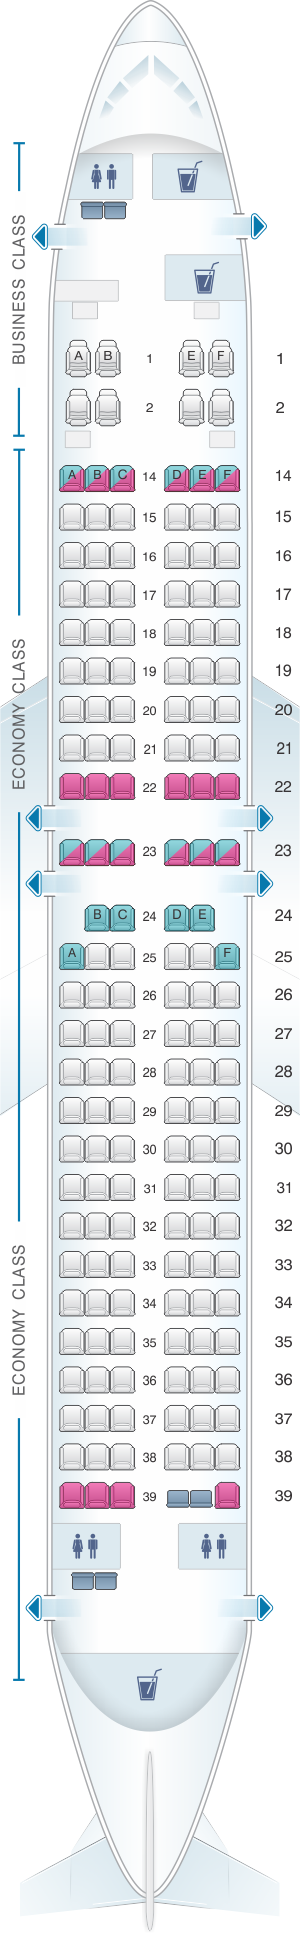 Seat map for Fiji Airways Boeing B737 800 164pax